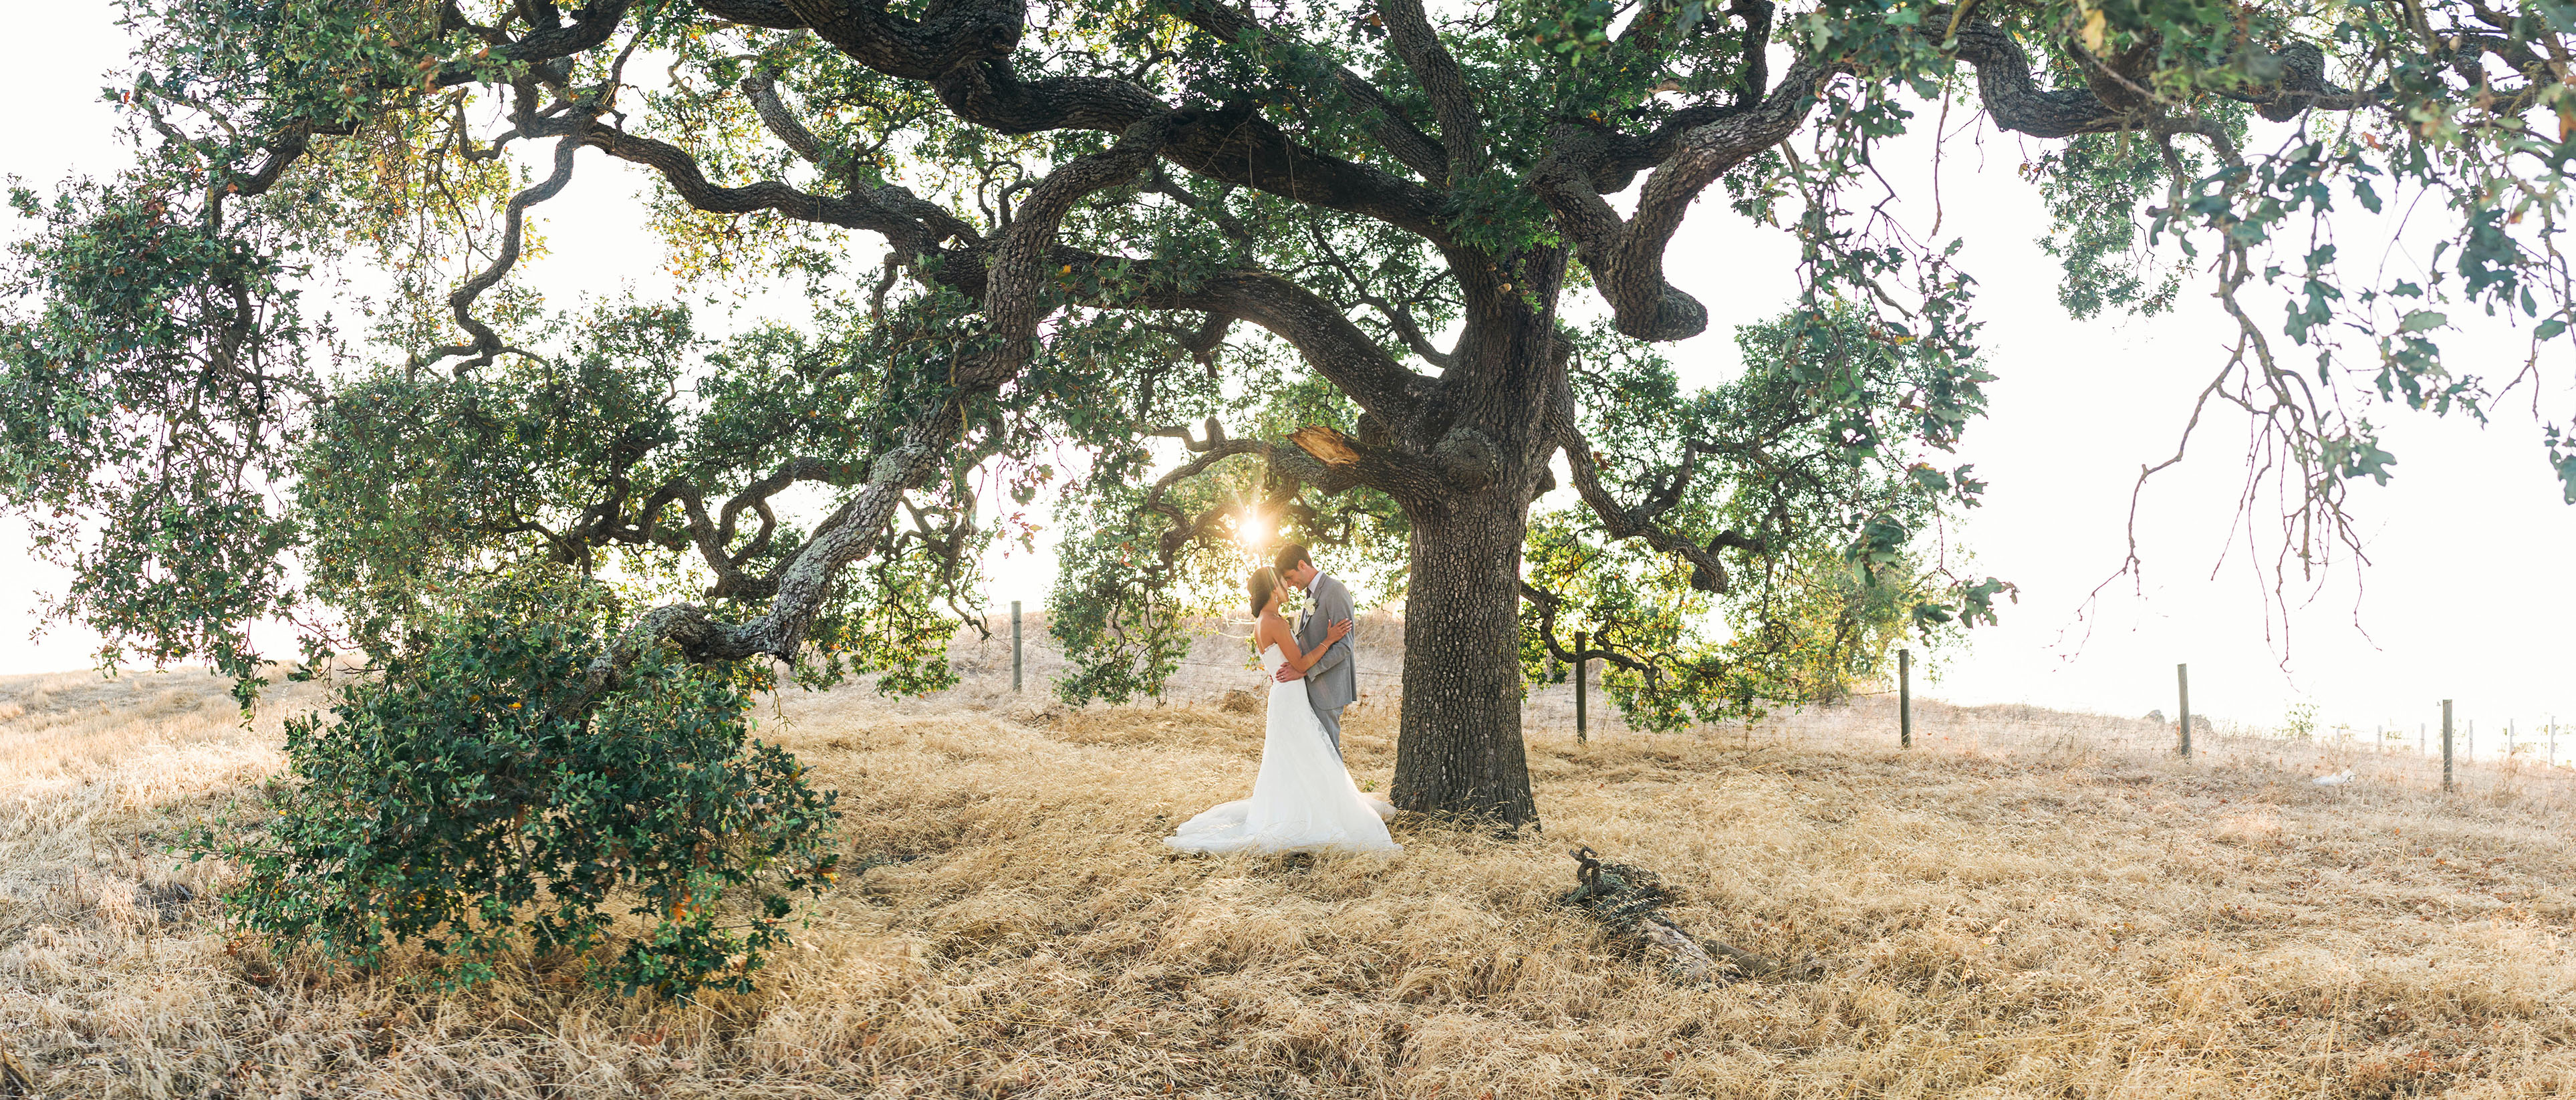 Connection Photography- Destination Wedding Photographer and